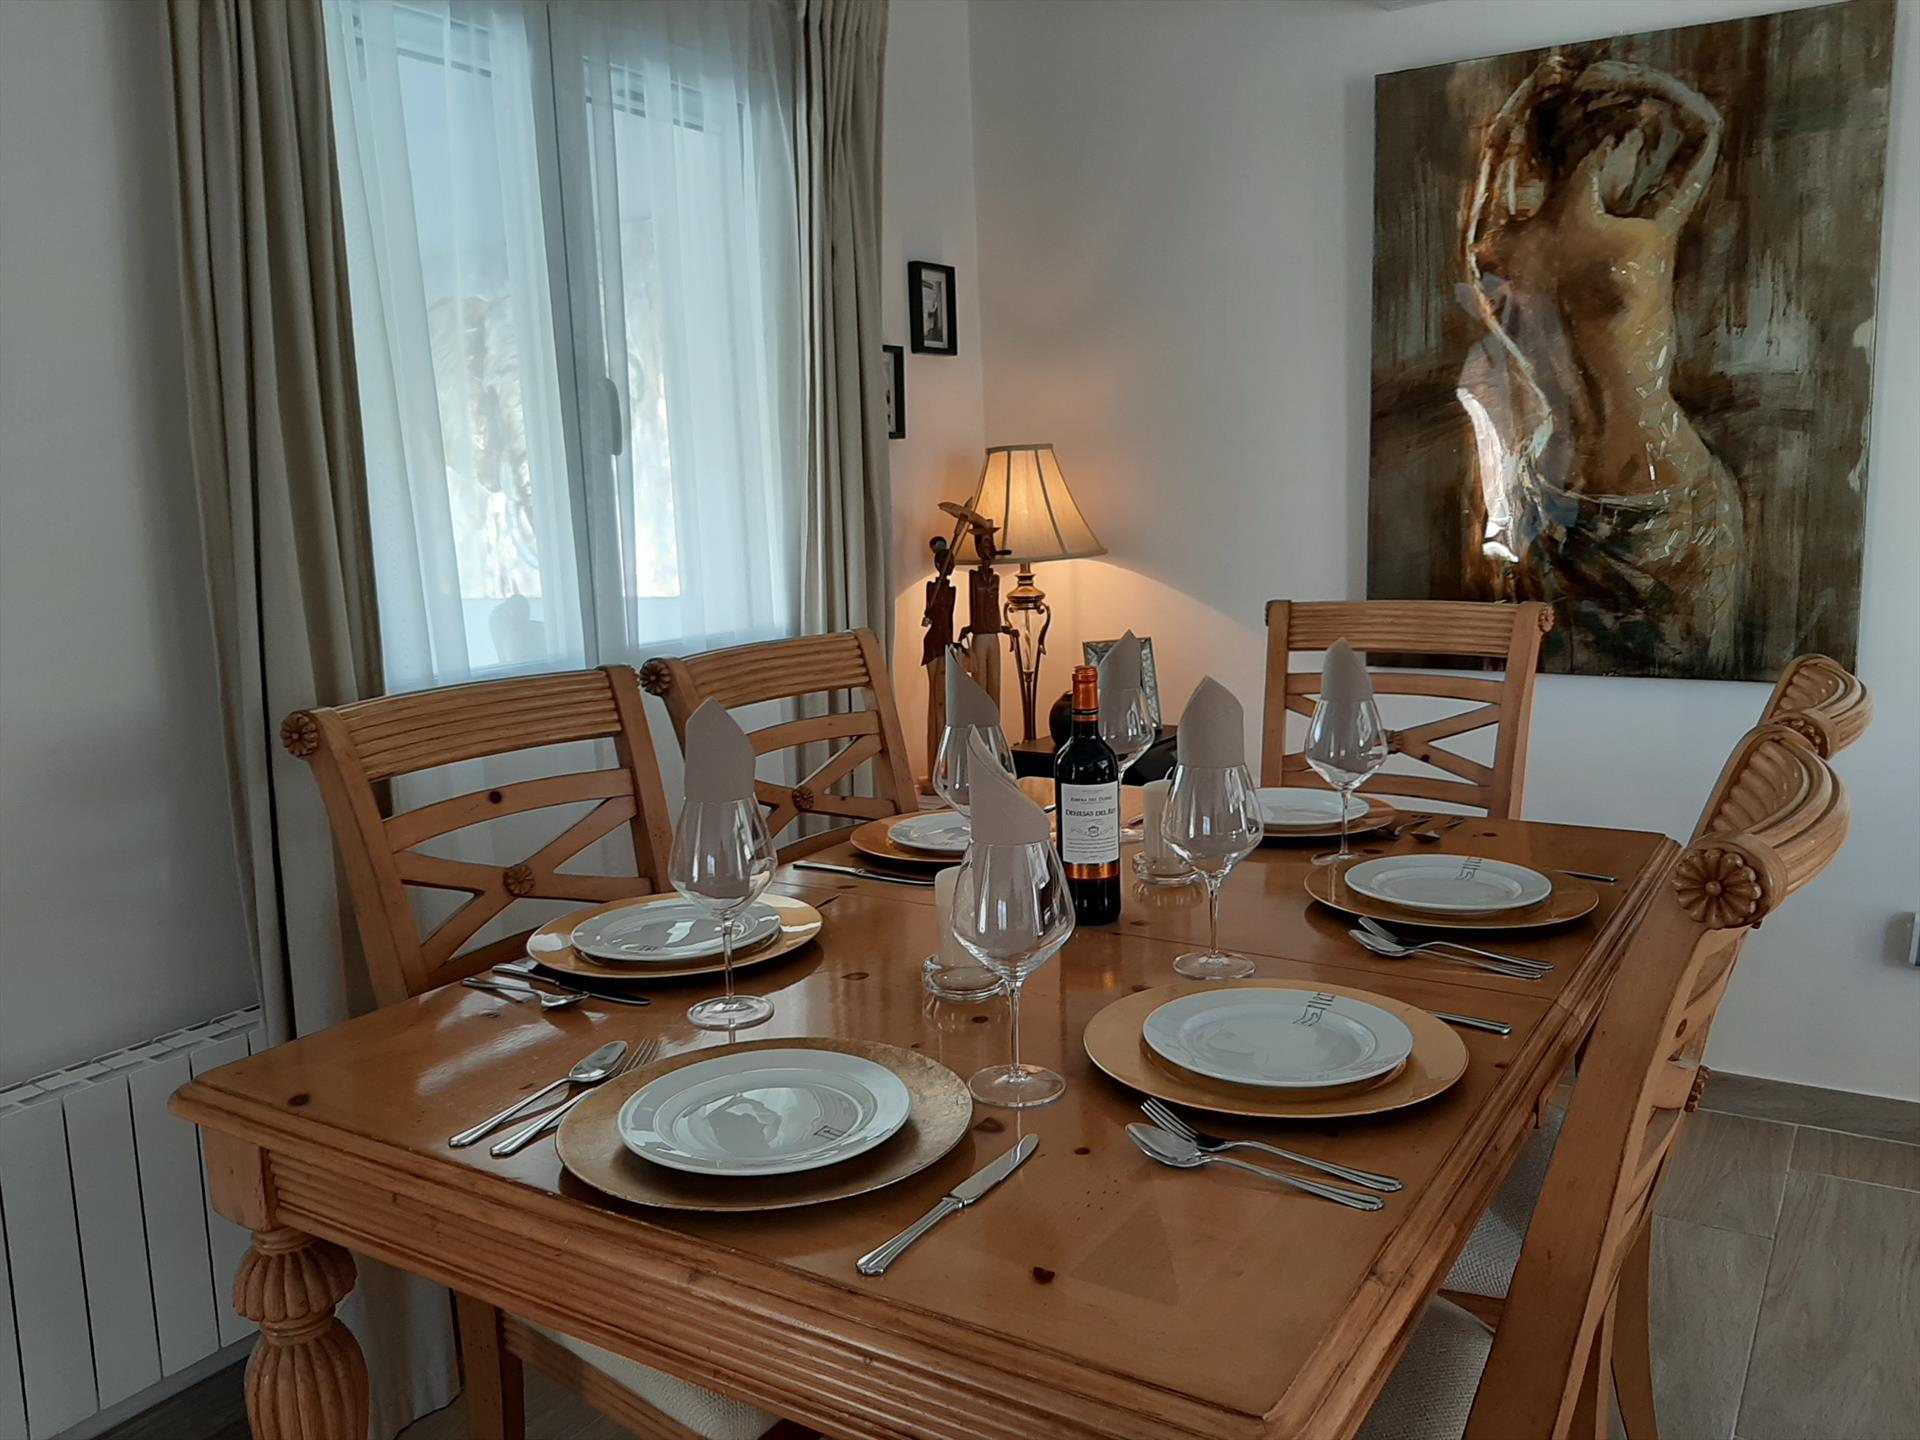 Dining room of a holiday rental villa in Dénia - Aguila Rent a Villa